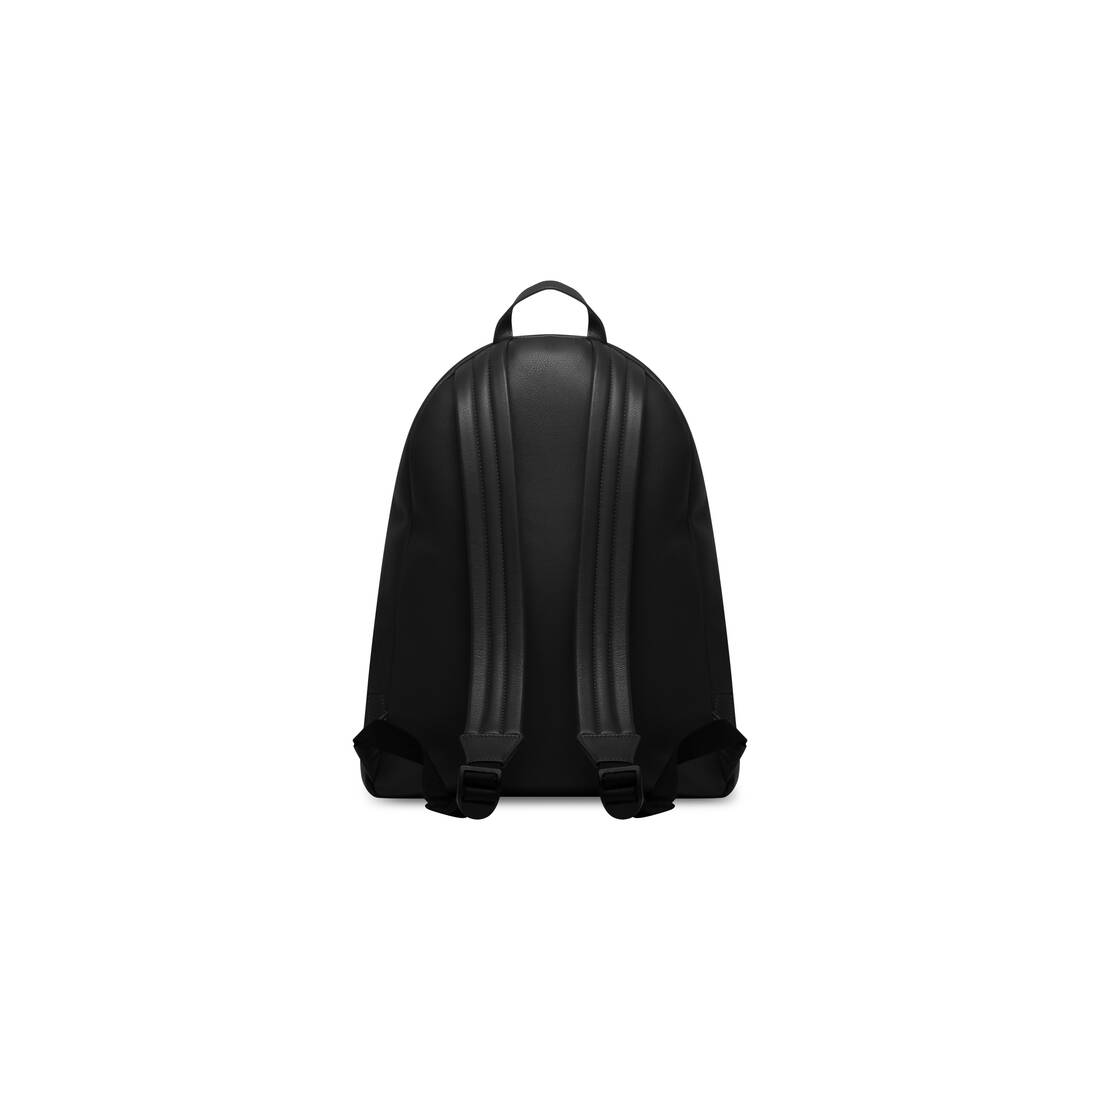 Display zoomed version of everyday backpack 2